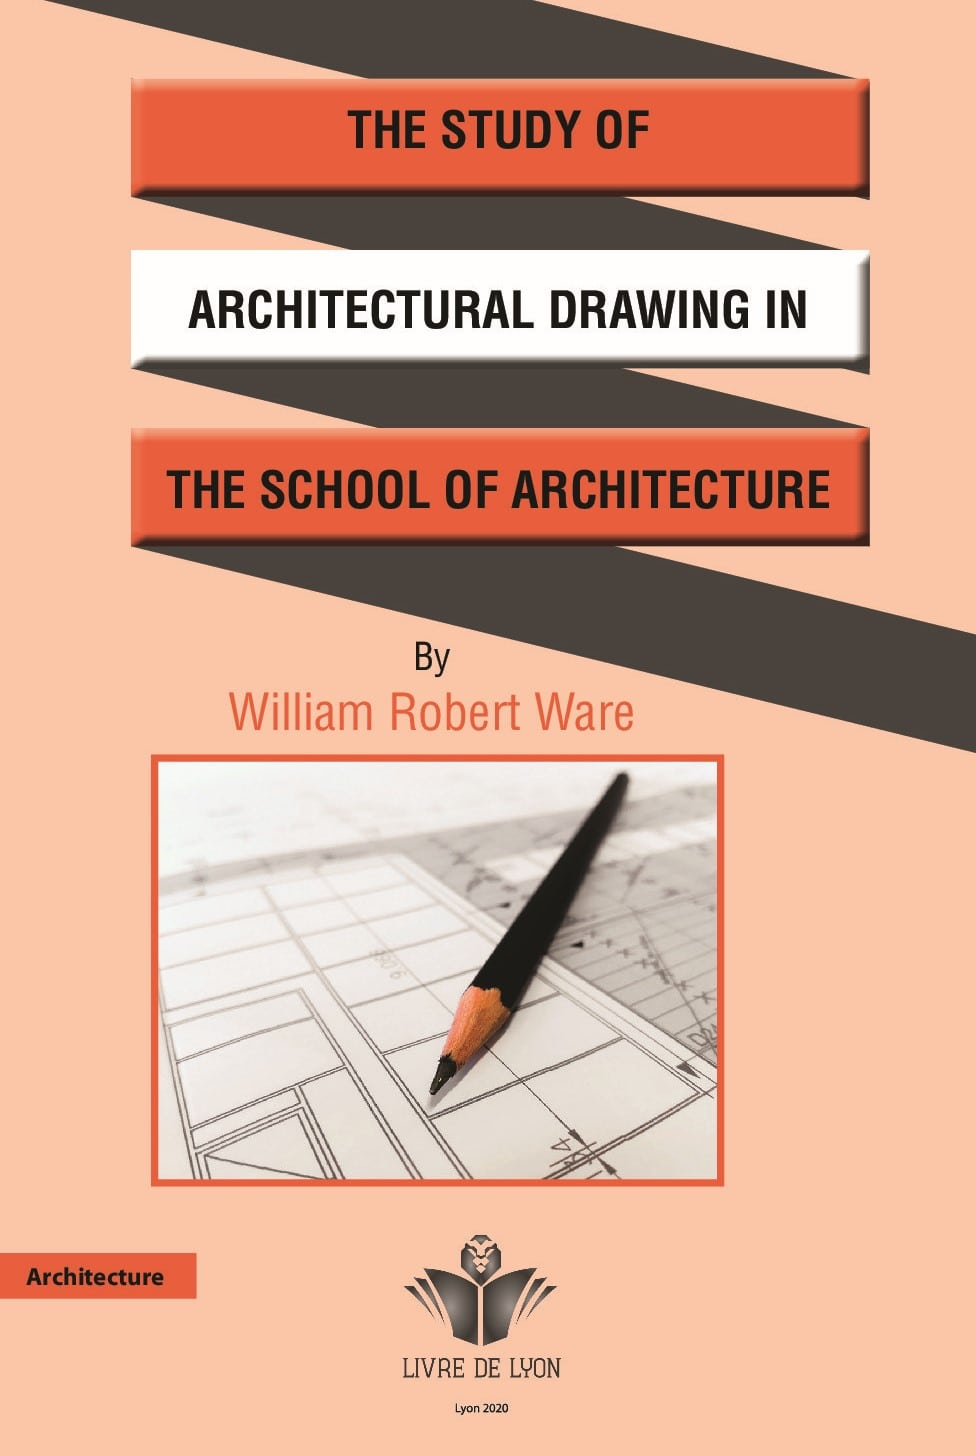 The Study of Architectural Drawing in the School of Architecture